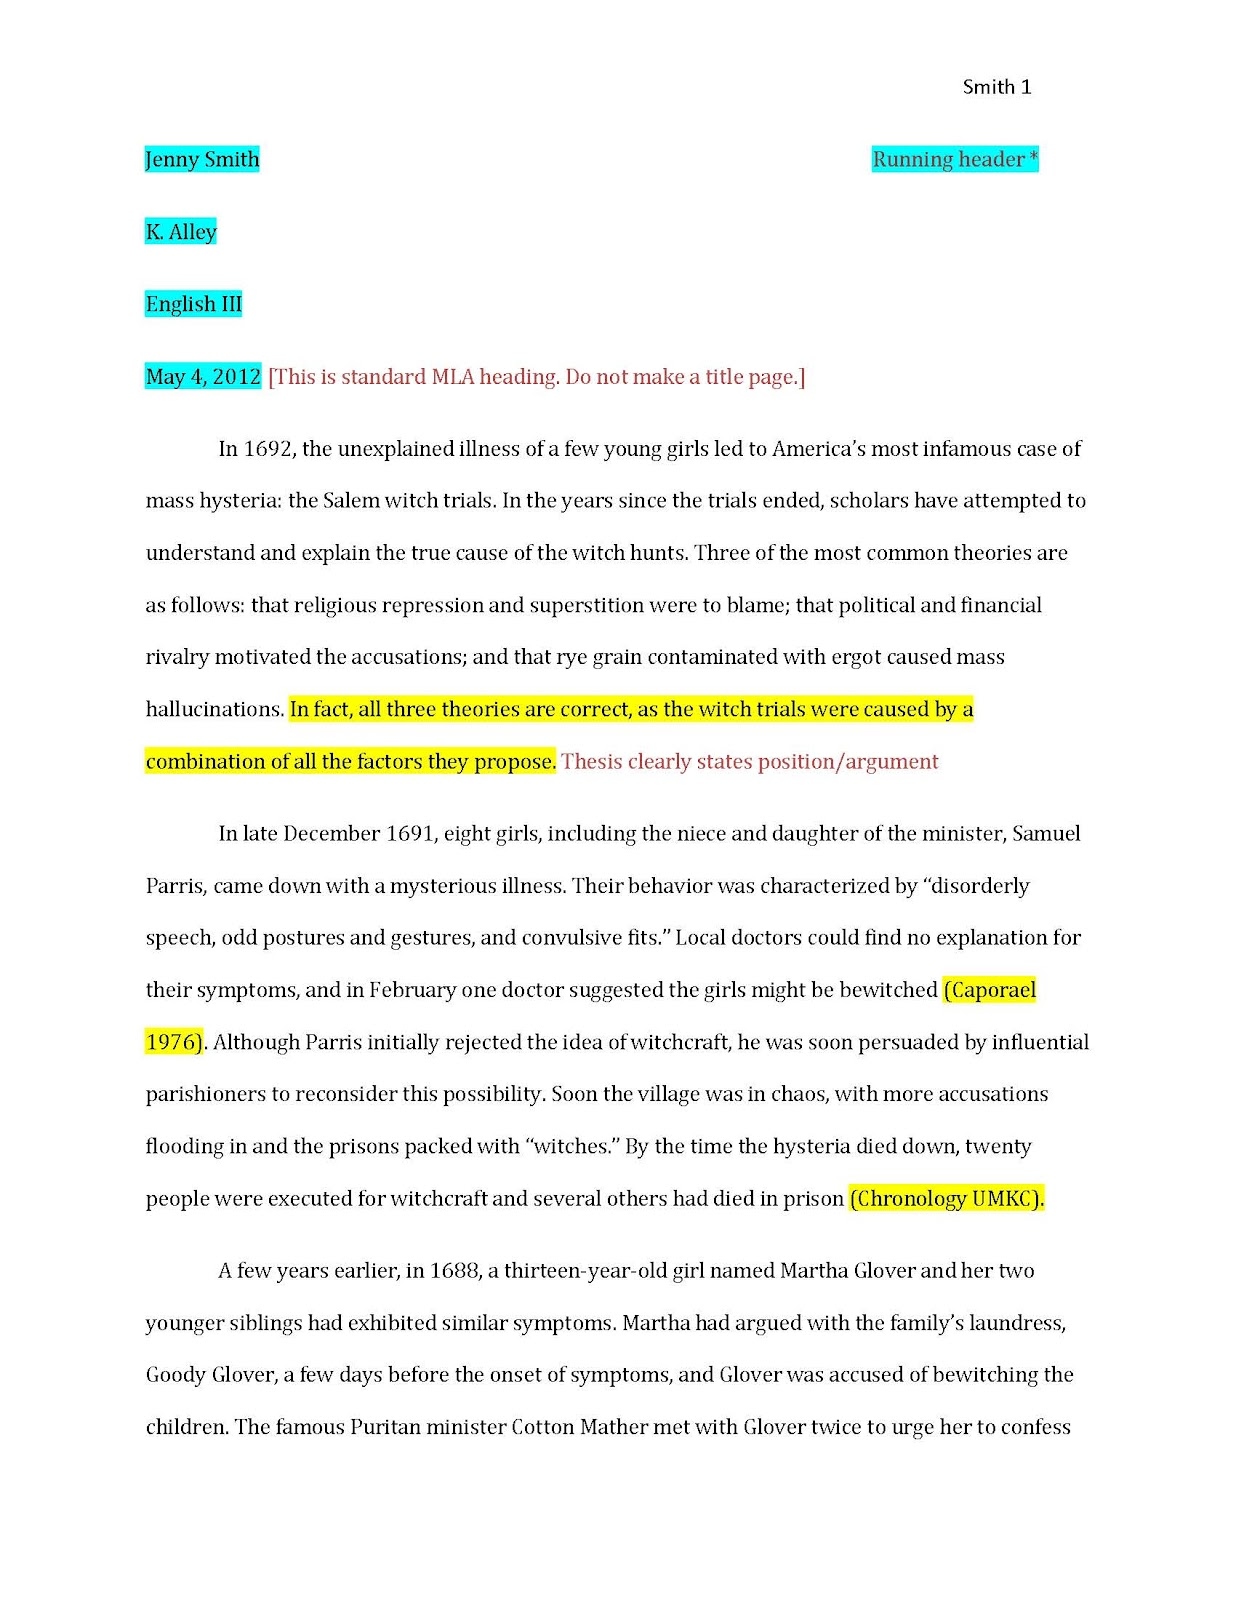 harvard referencing example essay well written essay format  referencing examples in essays examples of excellent cover letters referencing examples in essays sample hbs essays